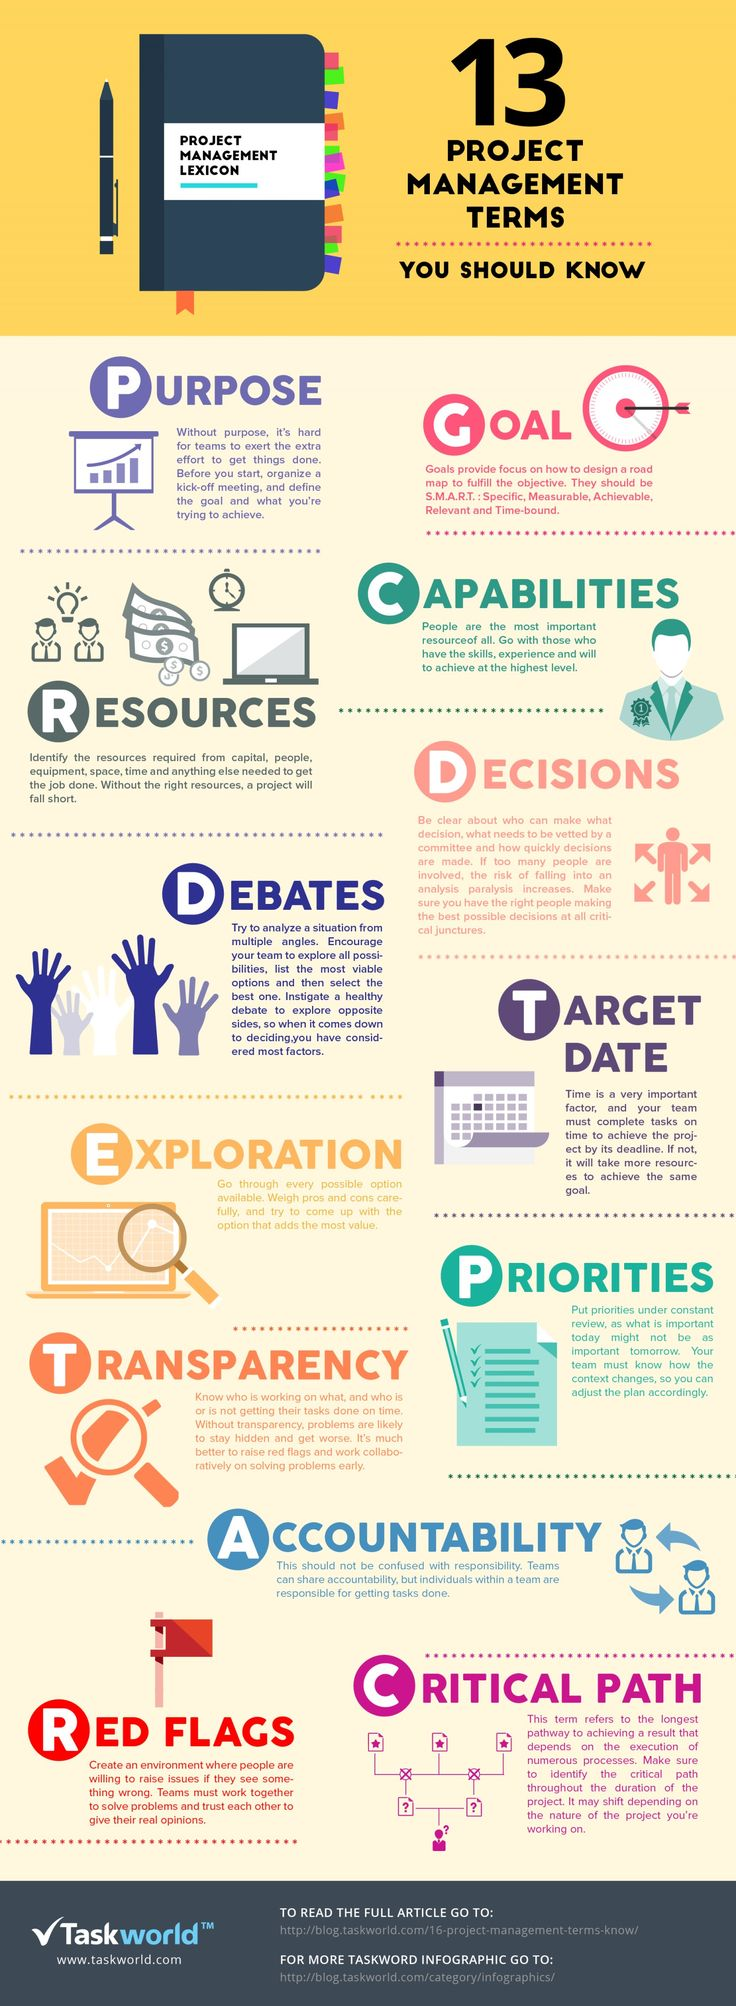 222 best program and project management images on pinterest 13 project management terms to improve your skills in managing filipino virtual workers xflitez Choice Image